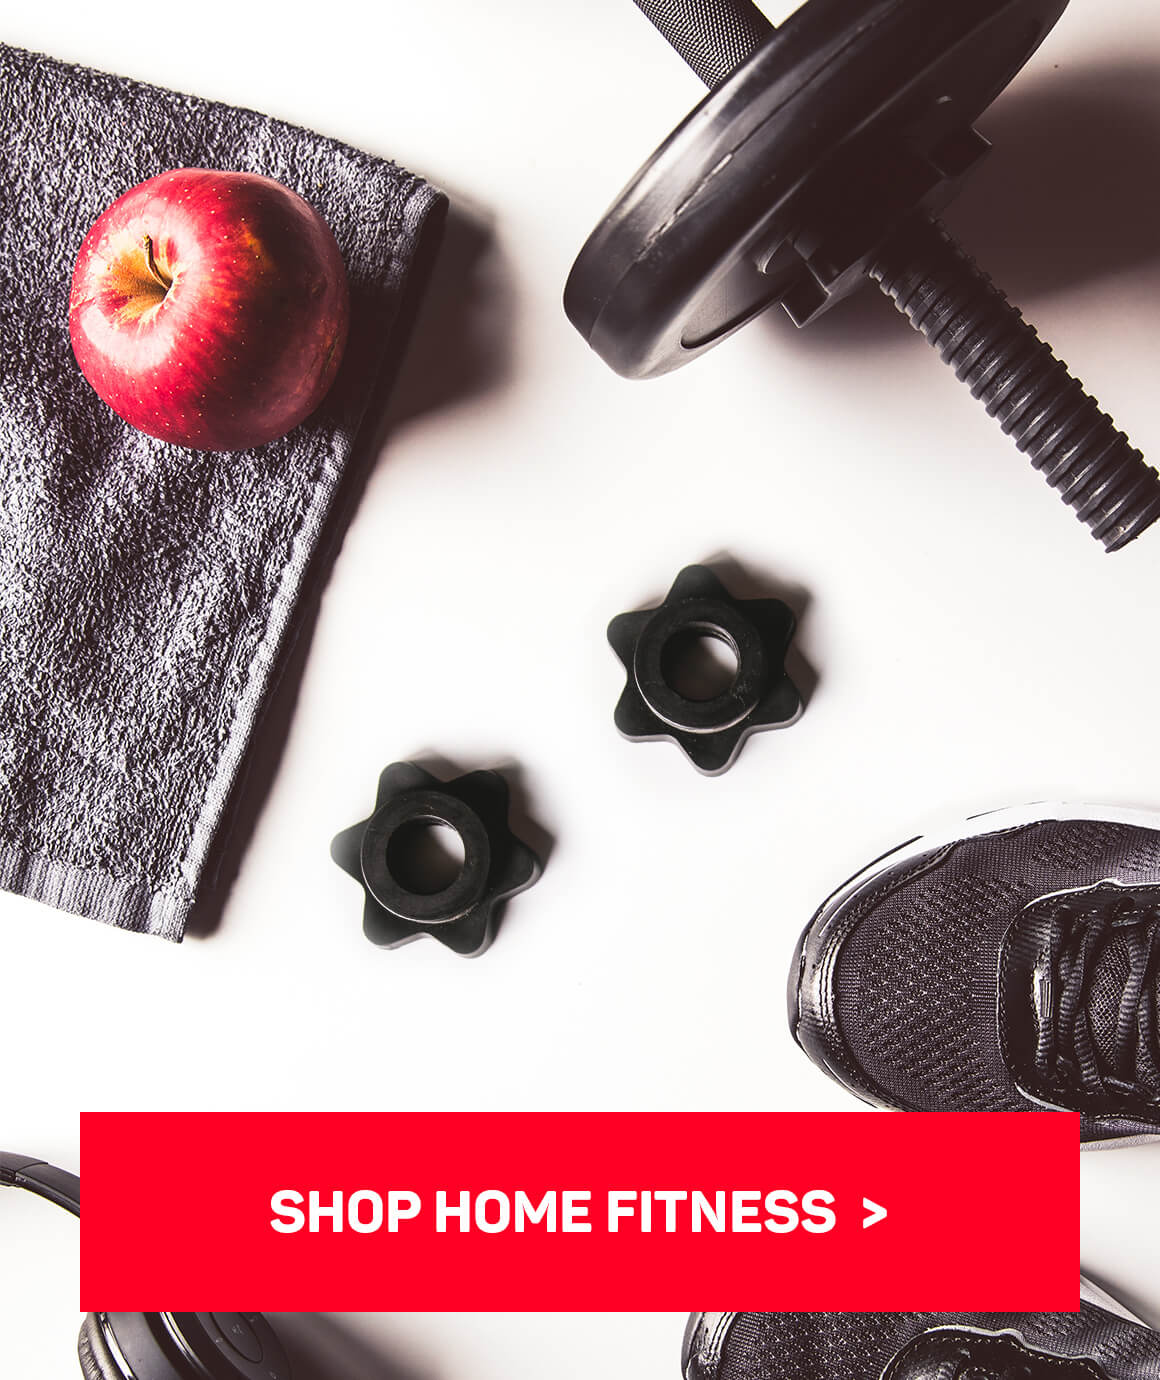 Shop home fitness